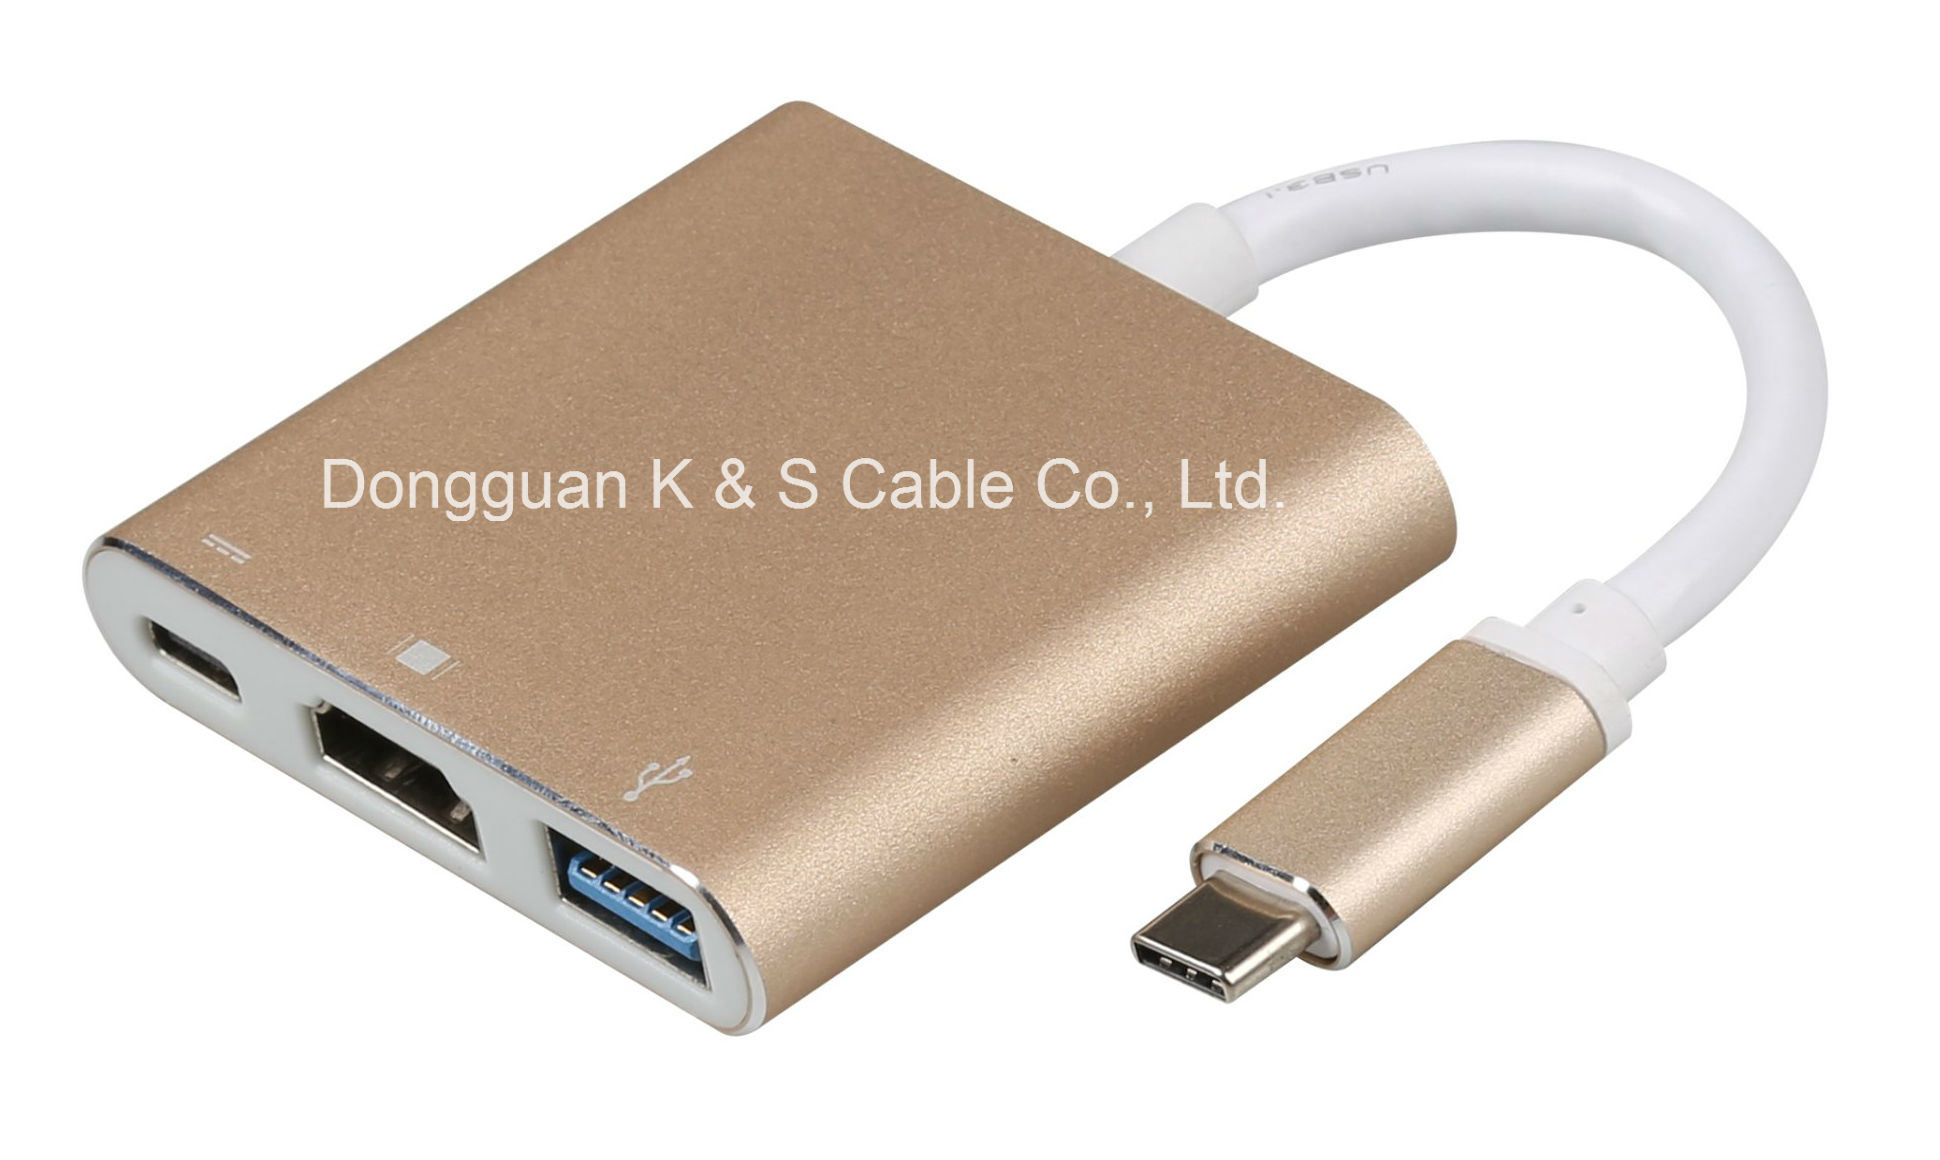 USB3.1 Type C to USB 3.0 + HDMI + Type C Adapter